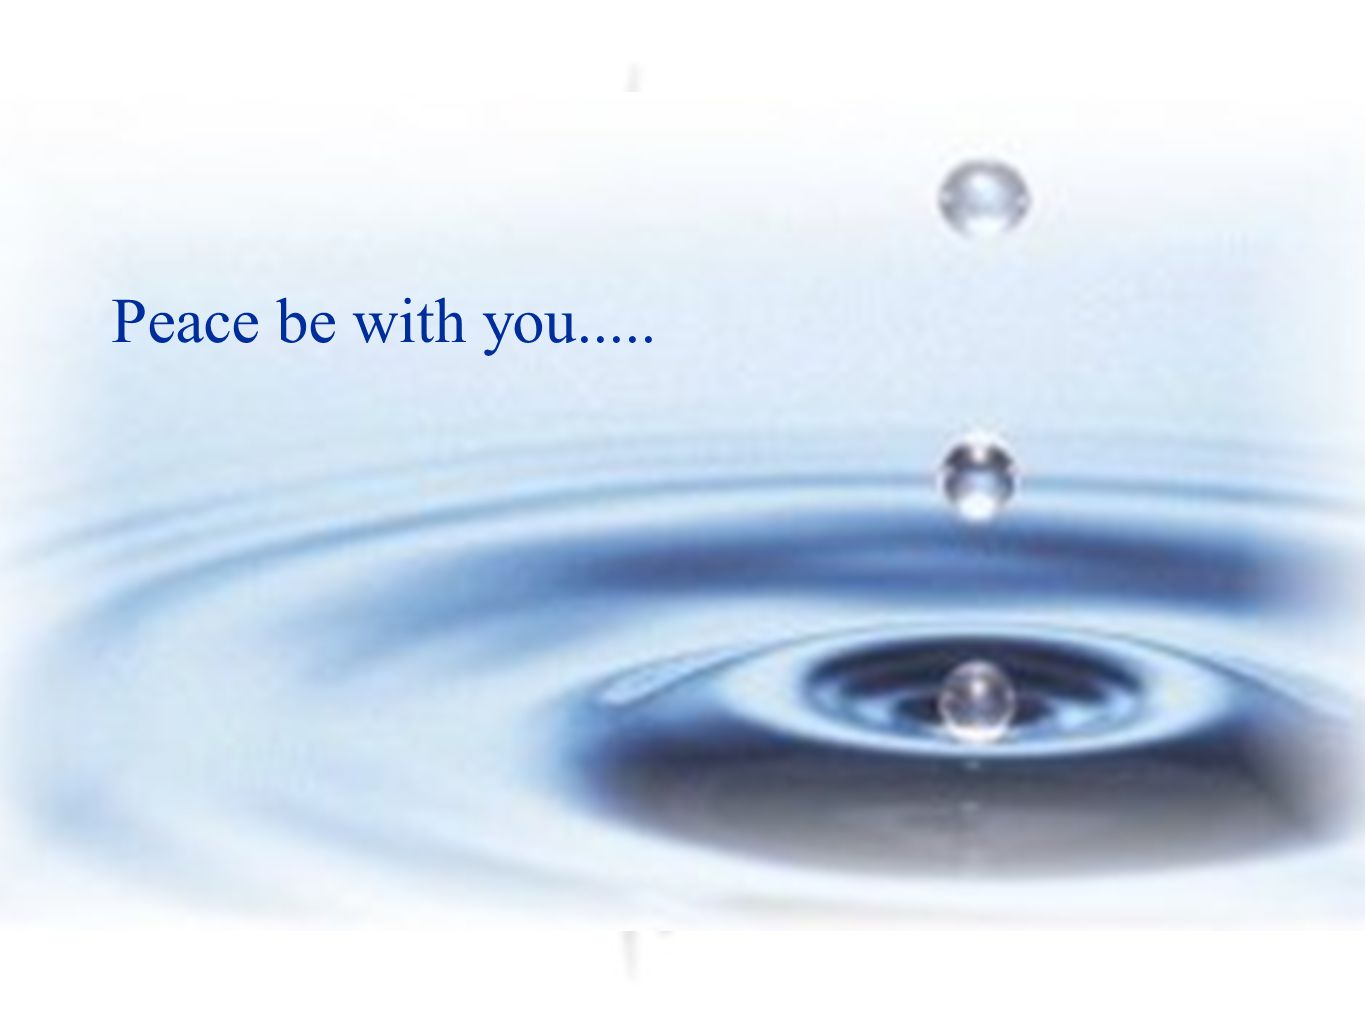 Peace be with you.....